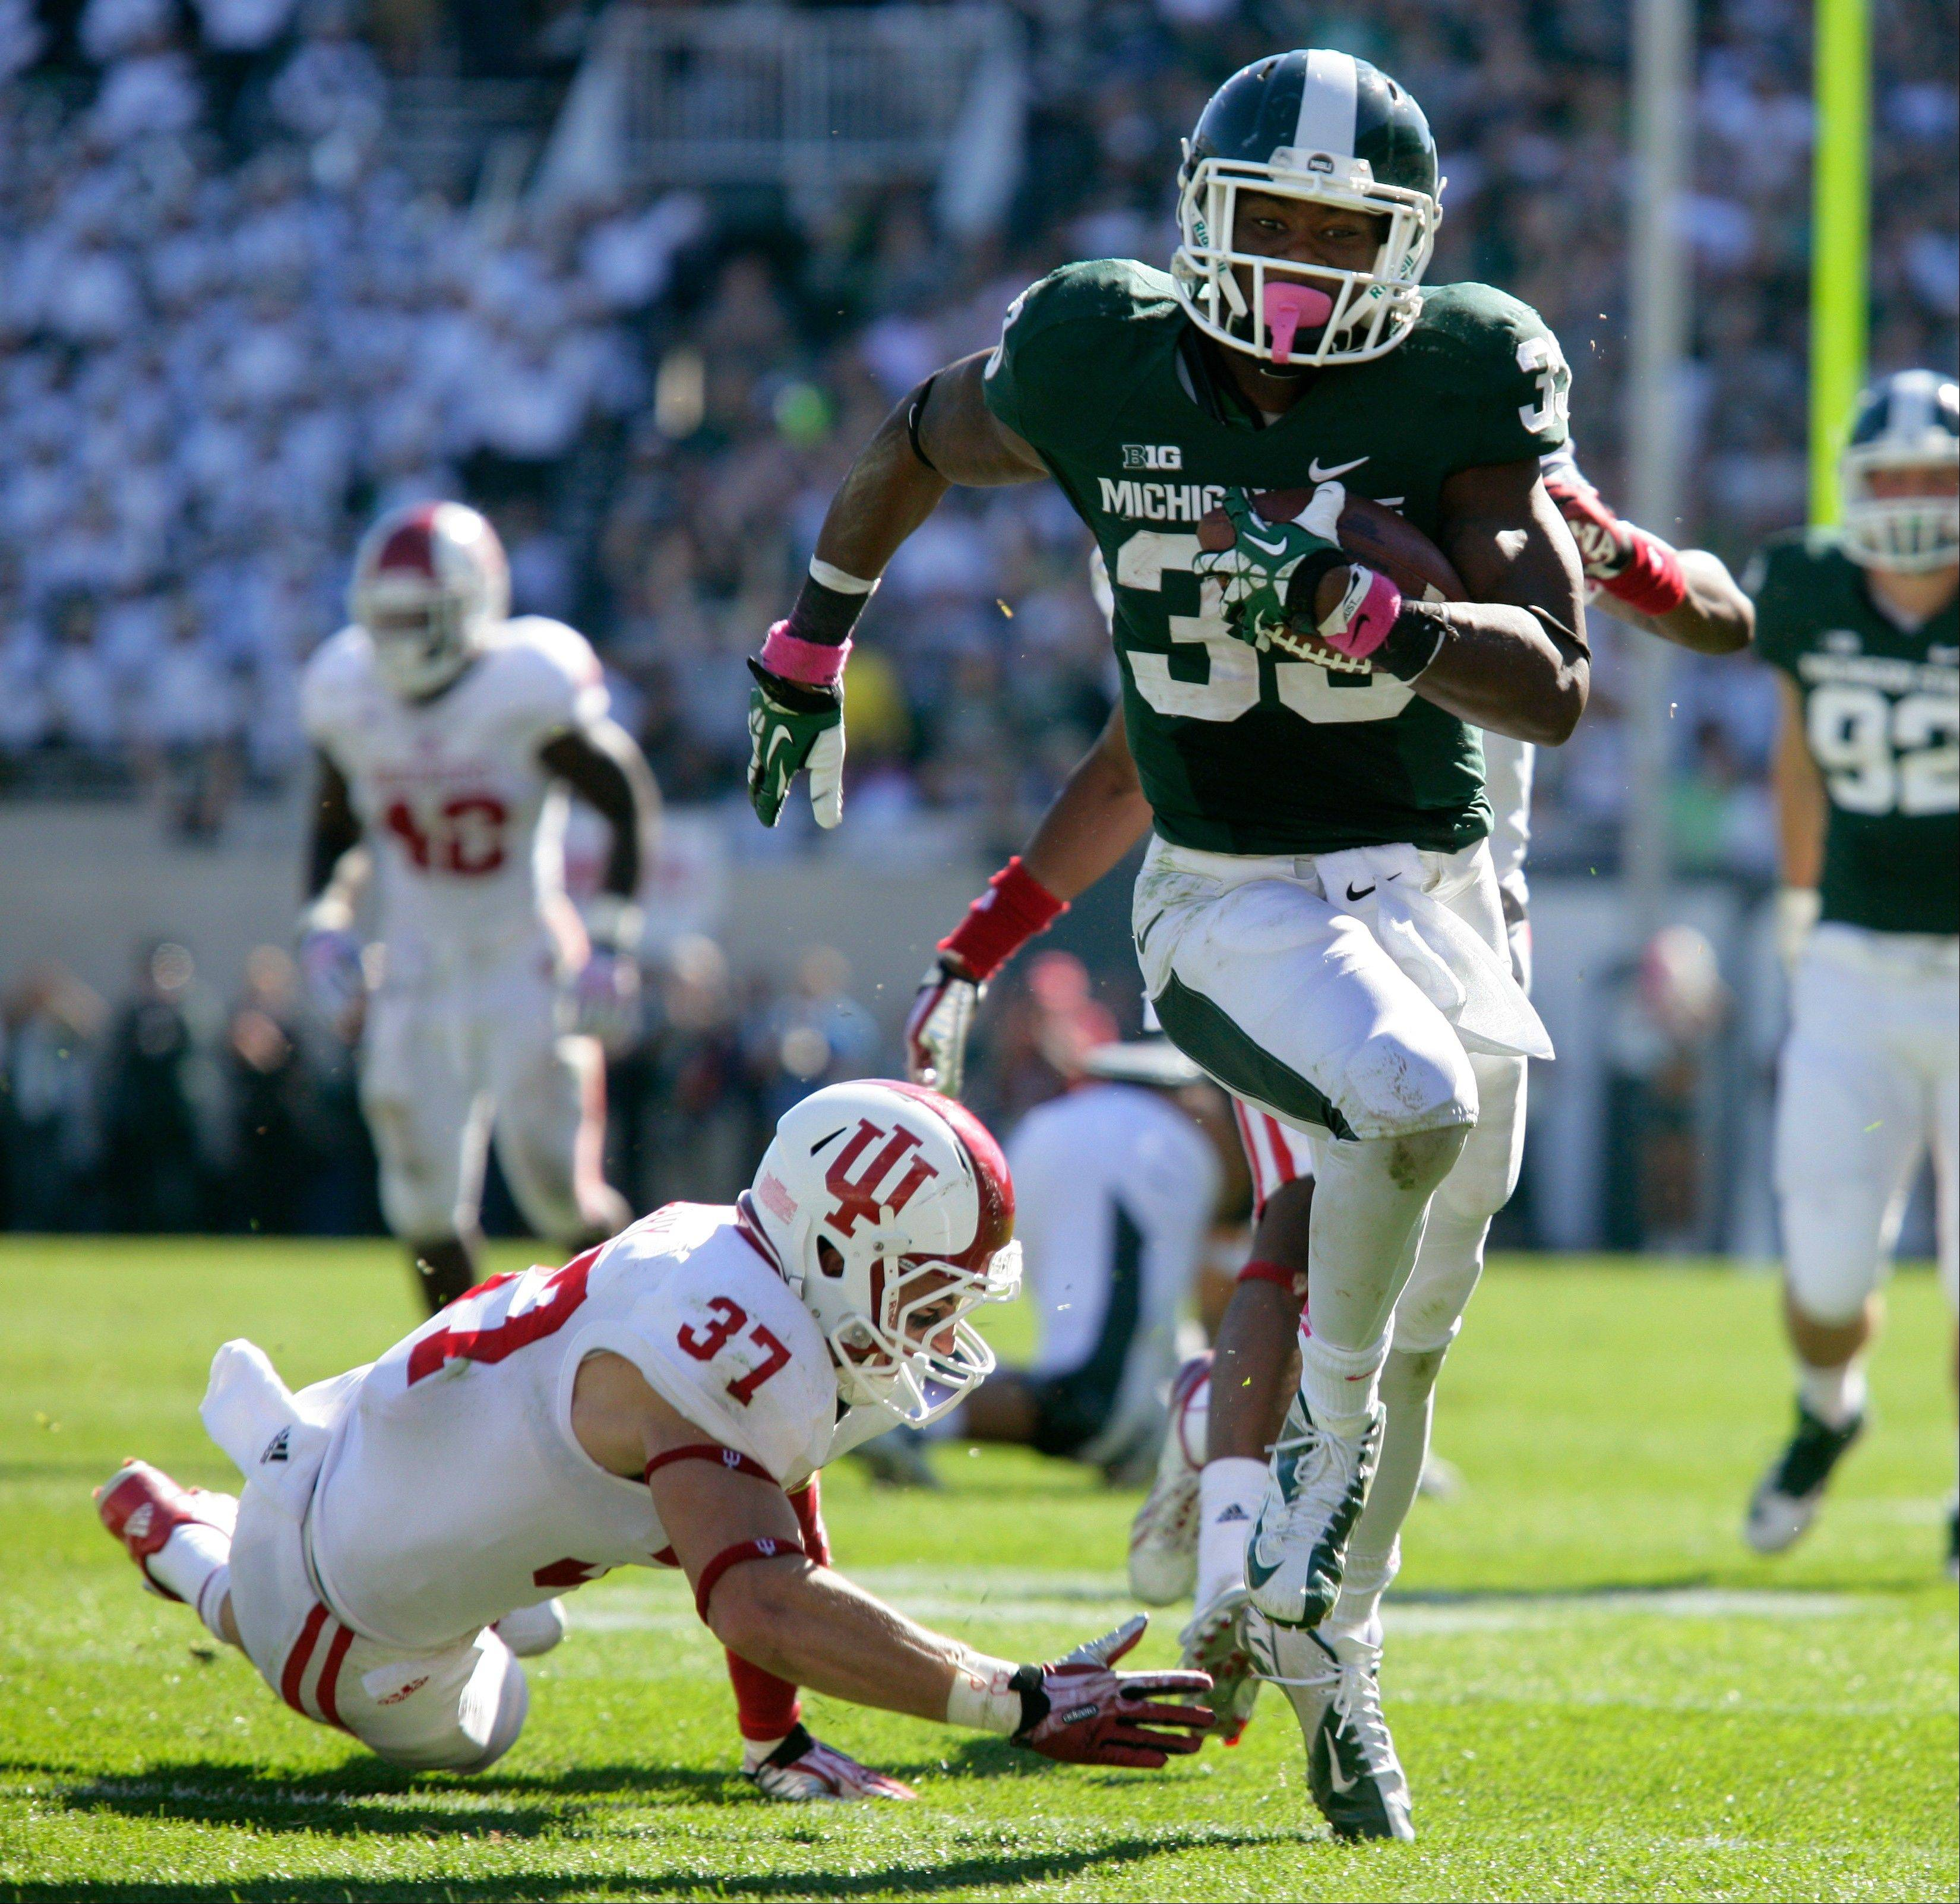 Michigan State's Jeremy Langford runs past Indiana's Mark Murphy for a 32-yard touchdown during the third quarter of Saturday's game in East Lansing, Mich. The Spartans won 42-28.